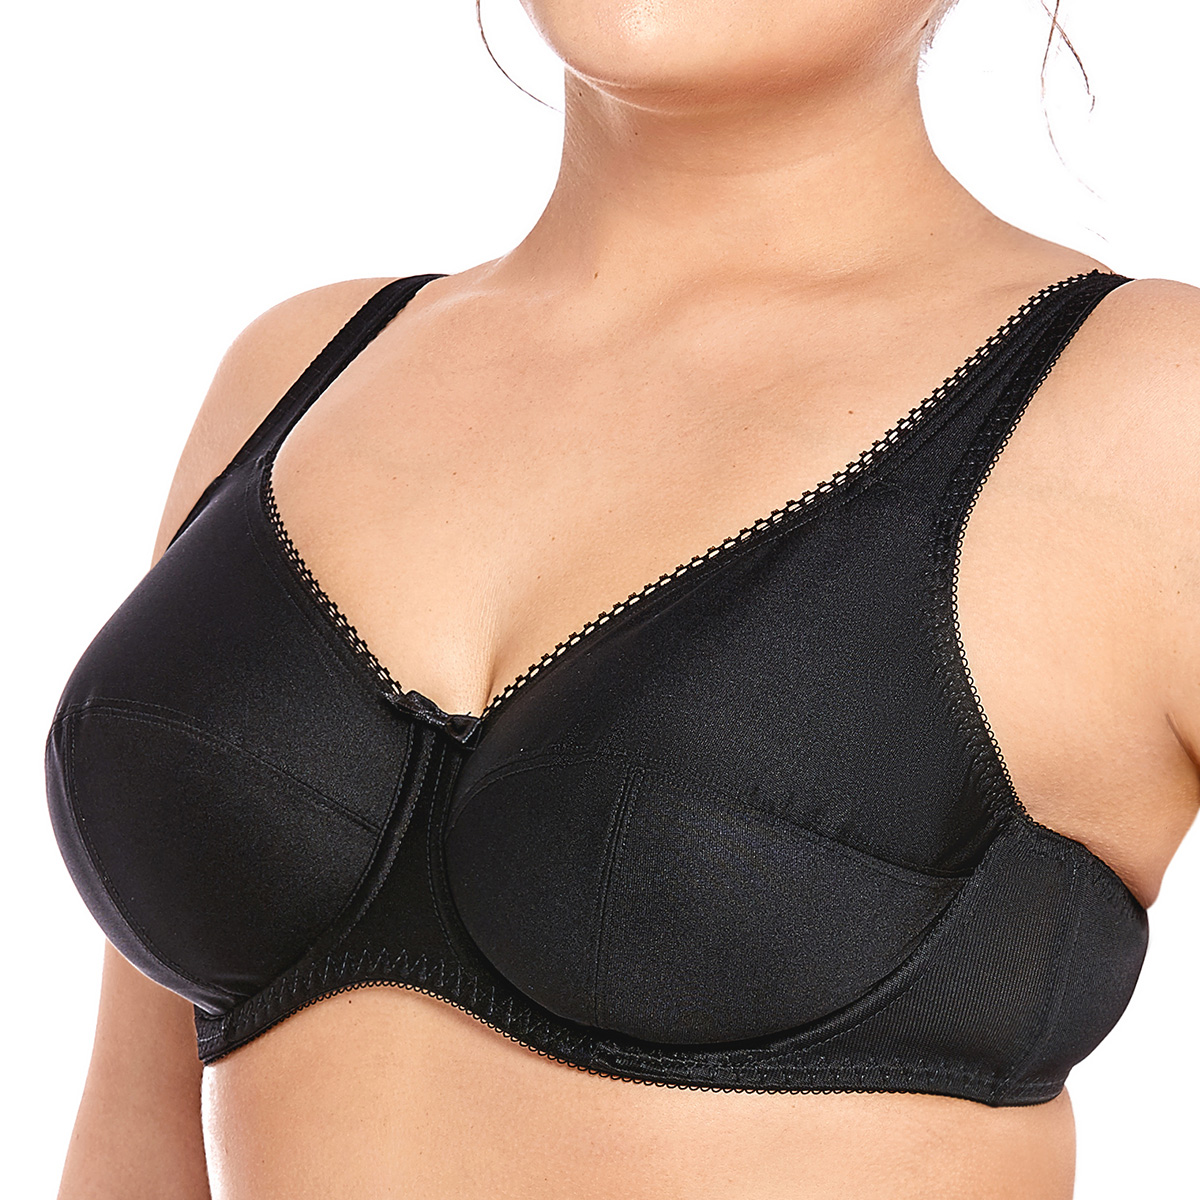 DELIMIRA Women's Plus Size Full Coverage  Non Padded Firm Support Control Underwired Bra